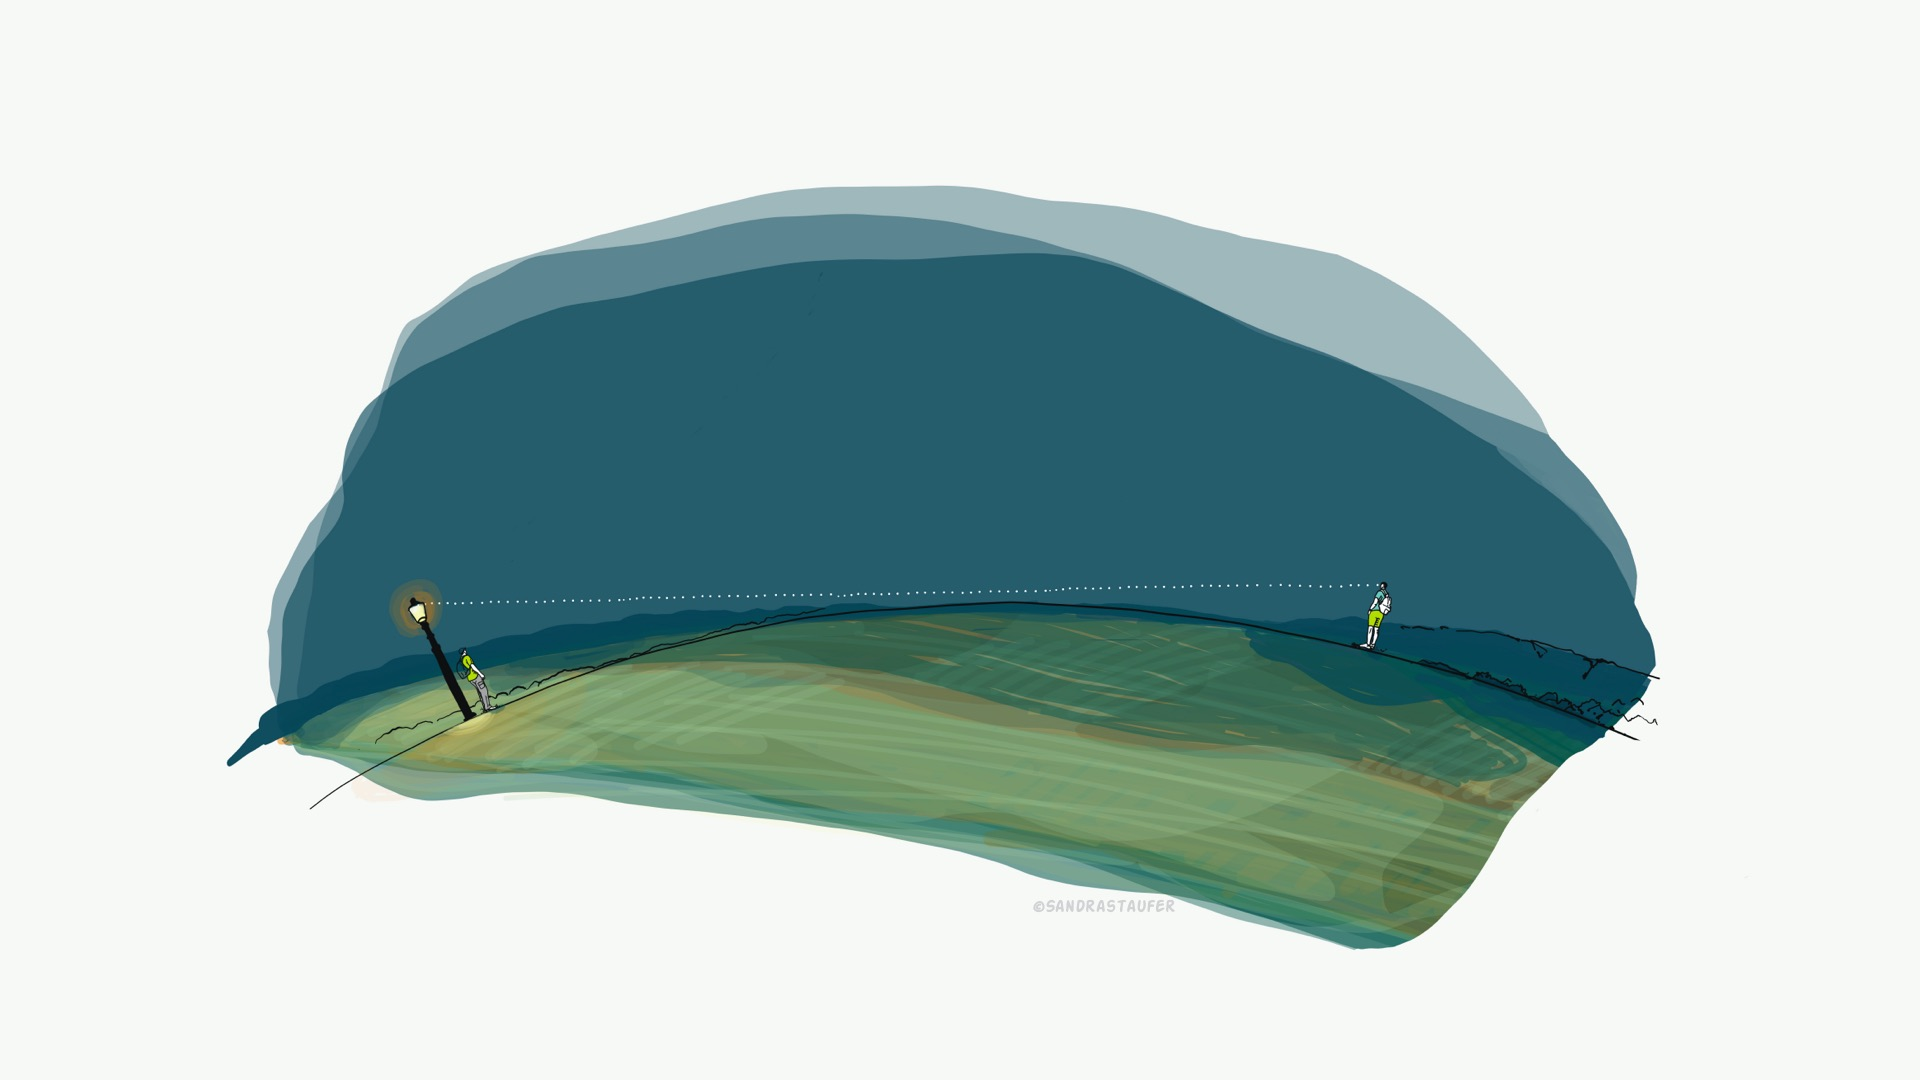 ILLUSTRATION BY SANDRA STAUFER FOR NATURAL NAVIGATOR /TRISTAN GOOLEY VODEO COURSE